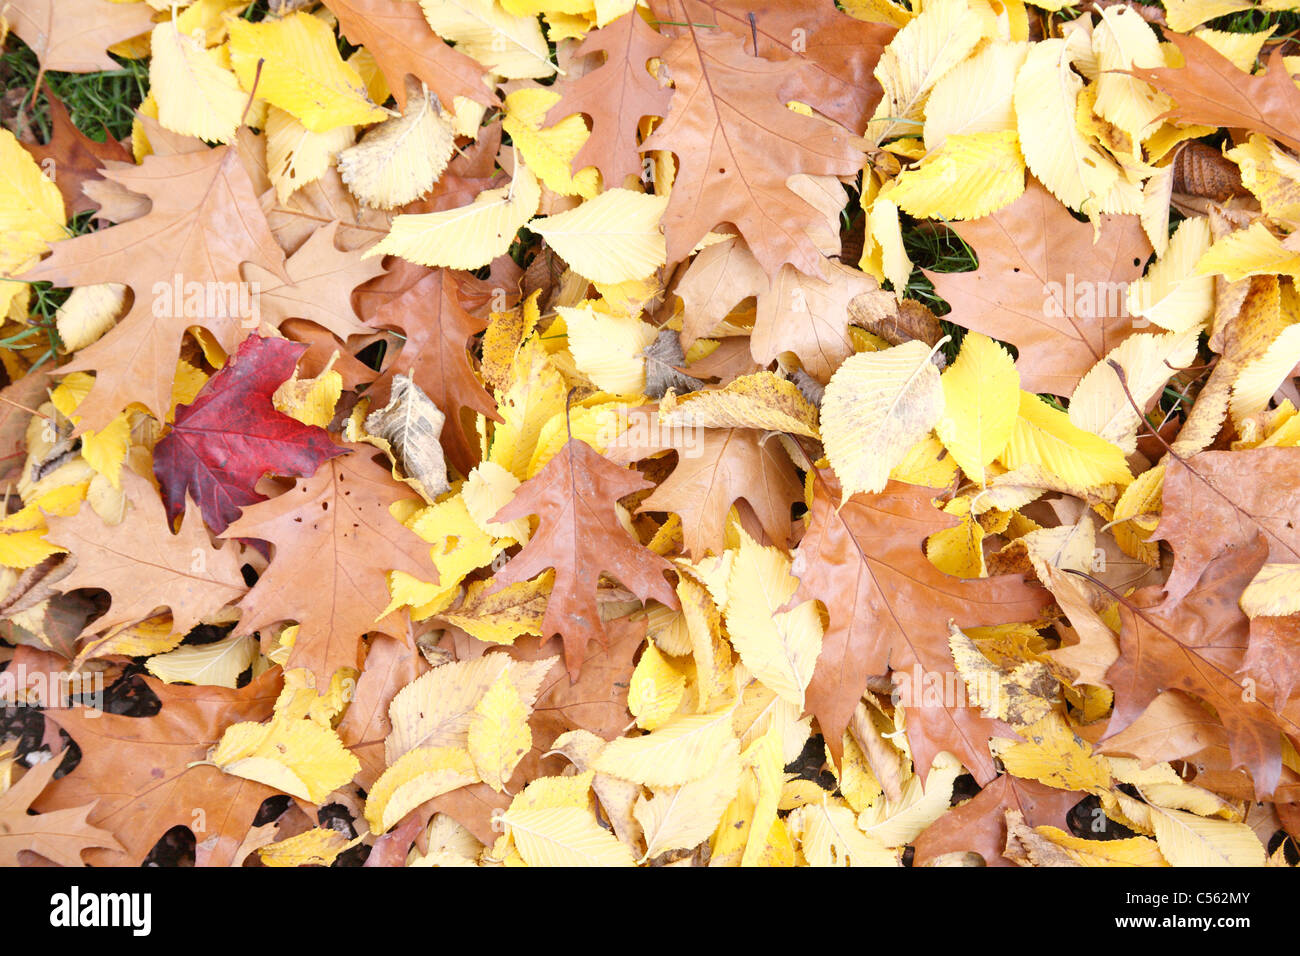 carpet of dry autumn leaves on a lawn UK - Stock Image